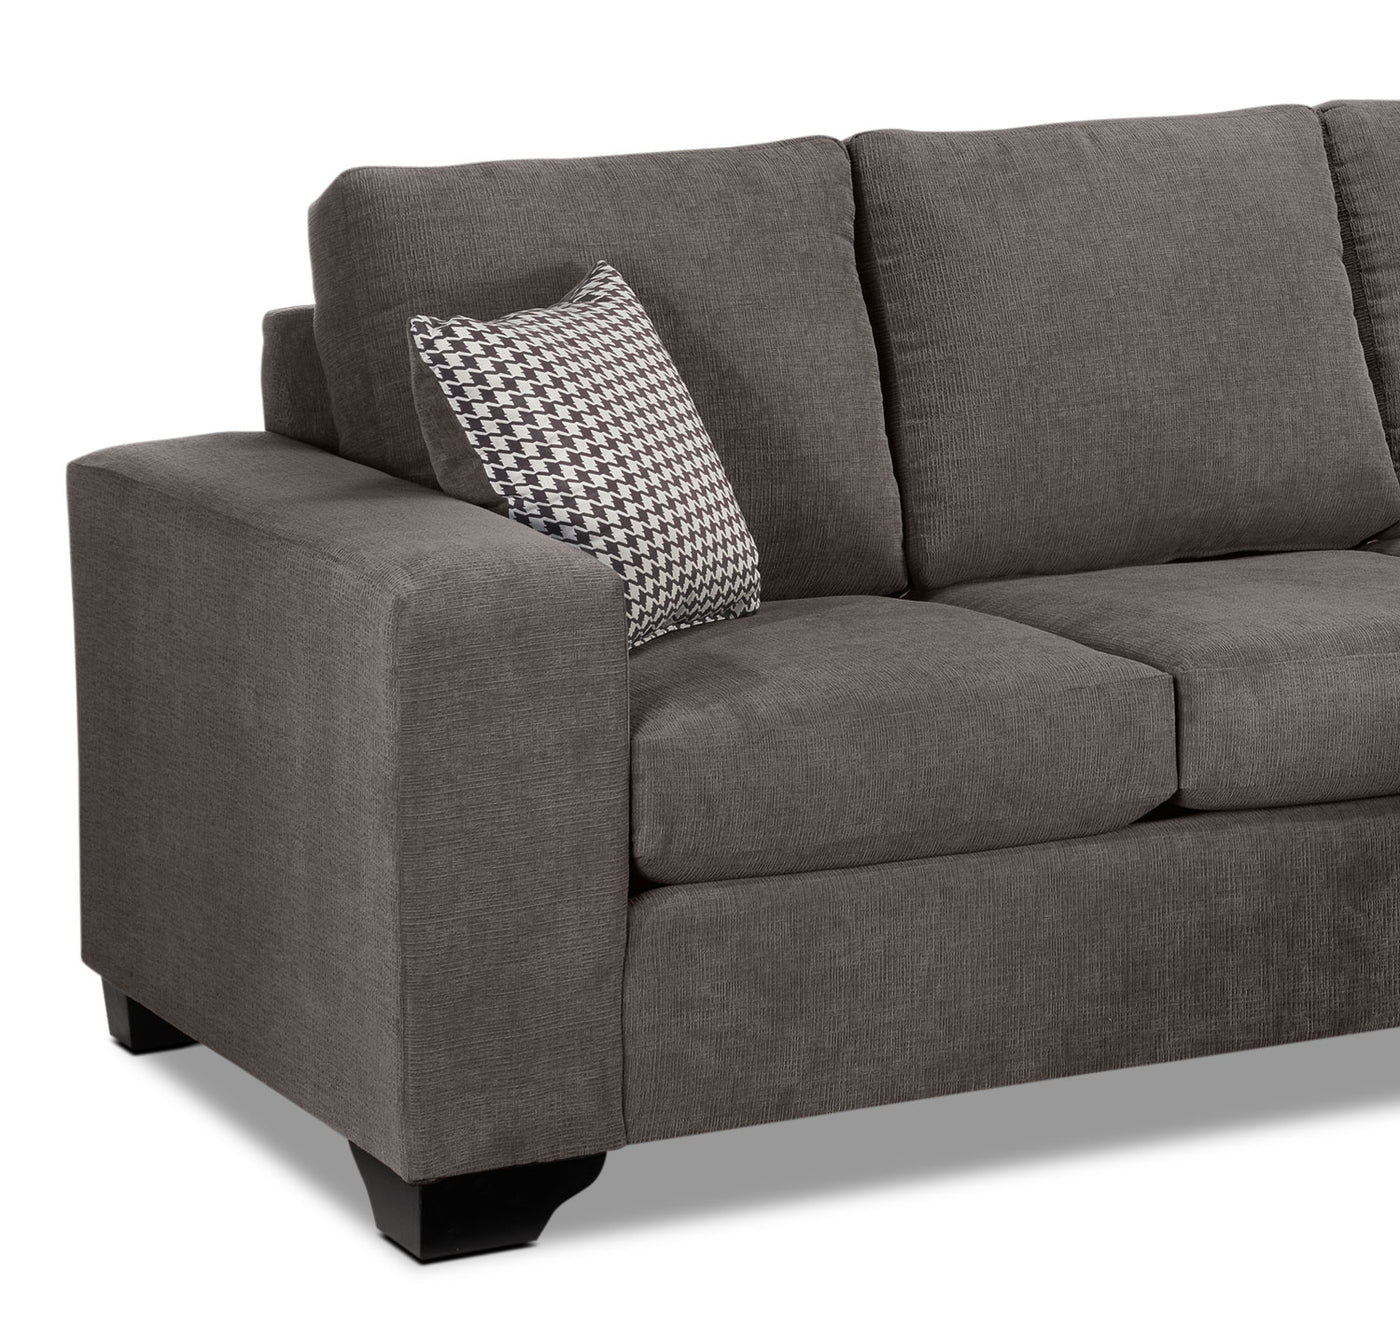 Fava Chaise Sofa   Grey. Touch To Zoom. Previous; Next